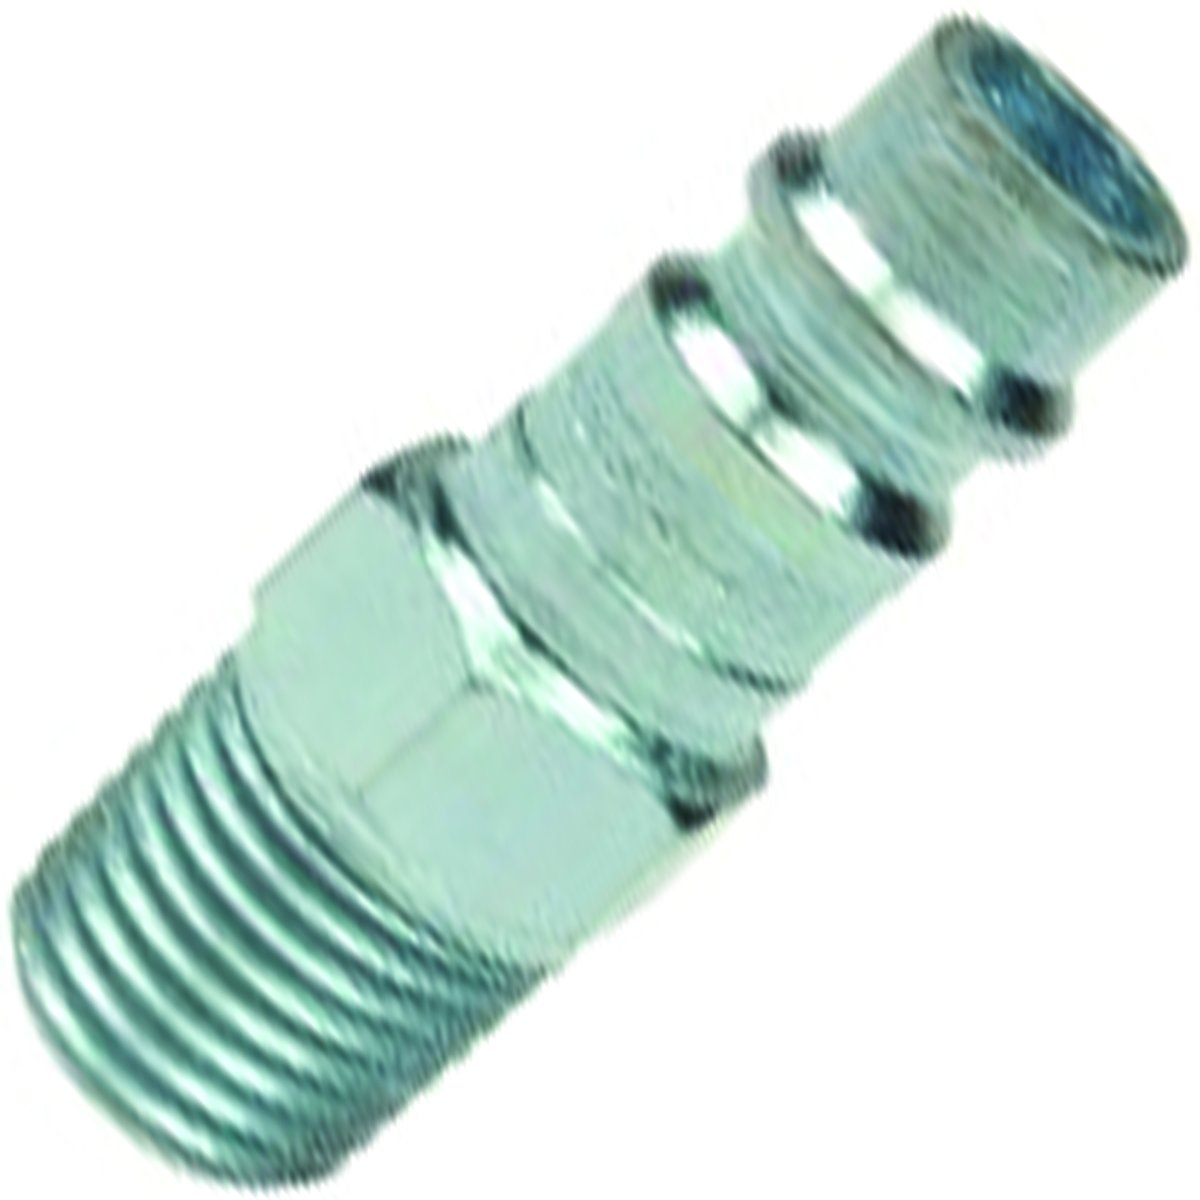 Pneumatic Connector - 1/4'' Megaflow Interchange x 1/4'' Male NPT (5 Pcs.)